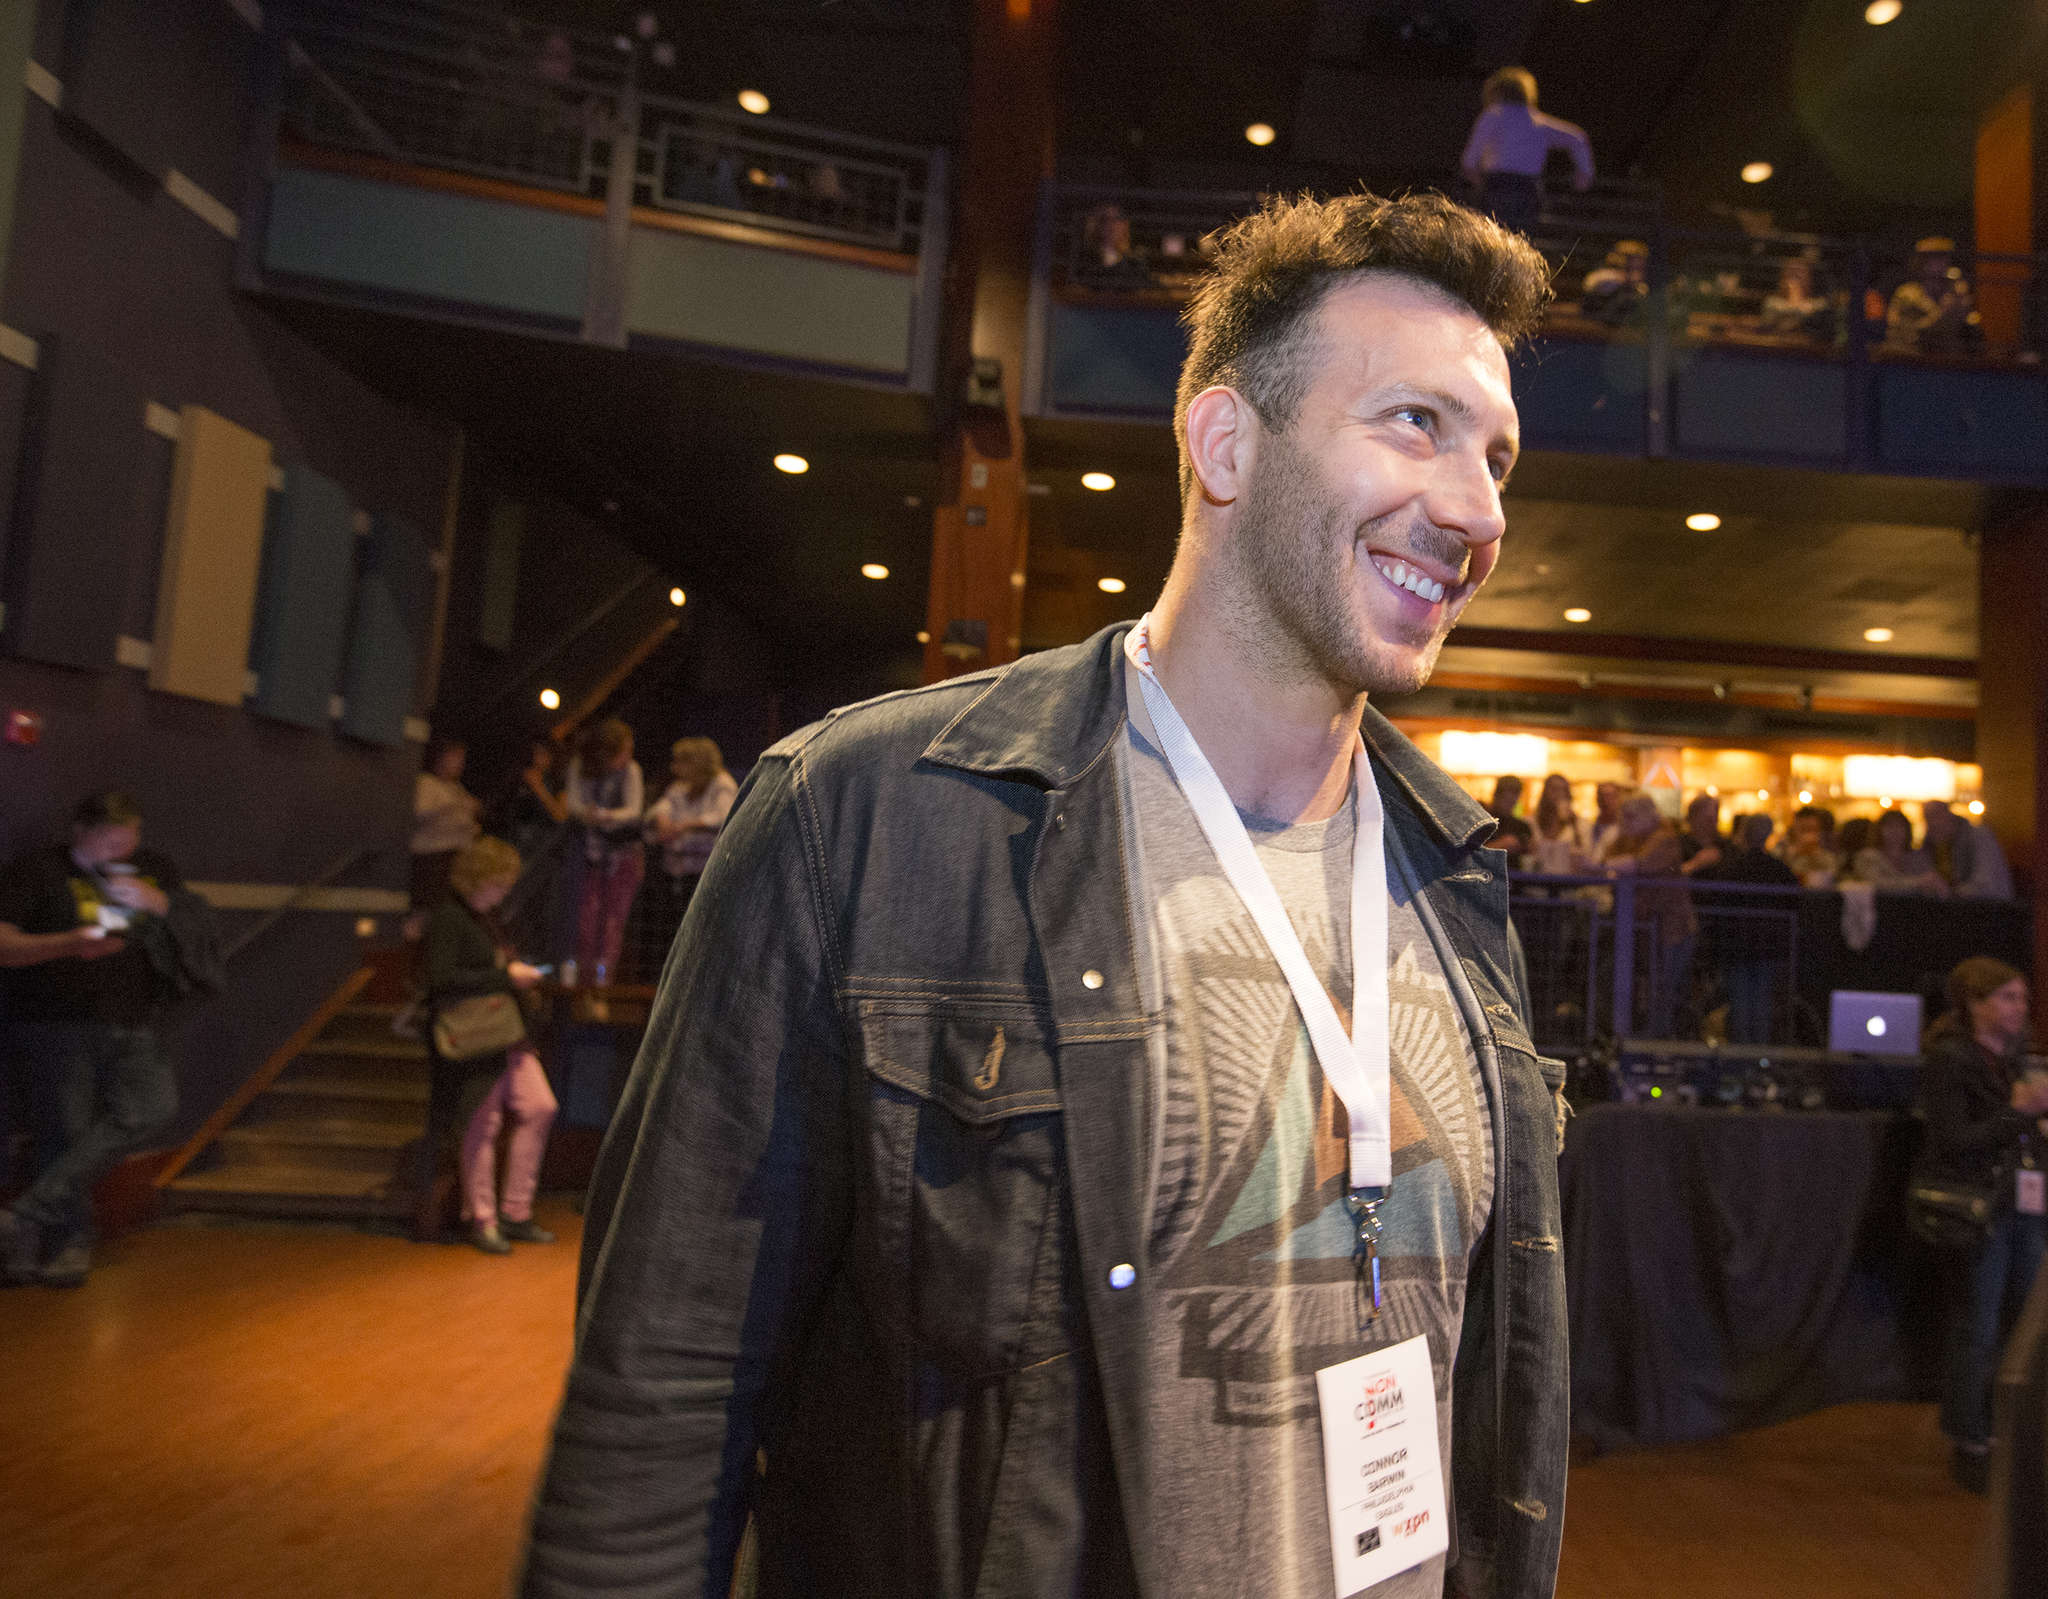 Eagles defensive end Connor Barwin will host the third annual benefit for his Make the World Better Foundation at Union Transfer on Friday.